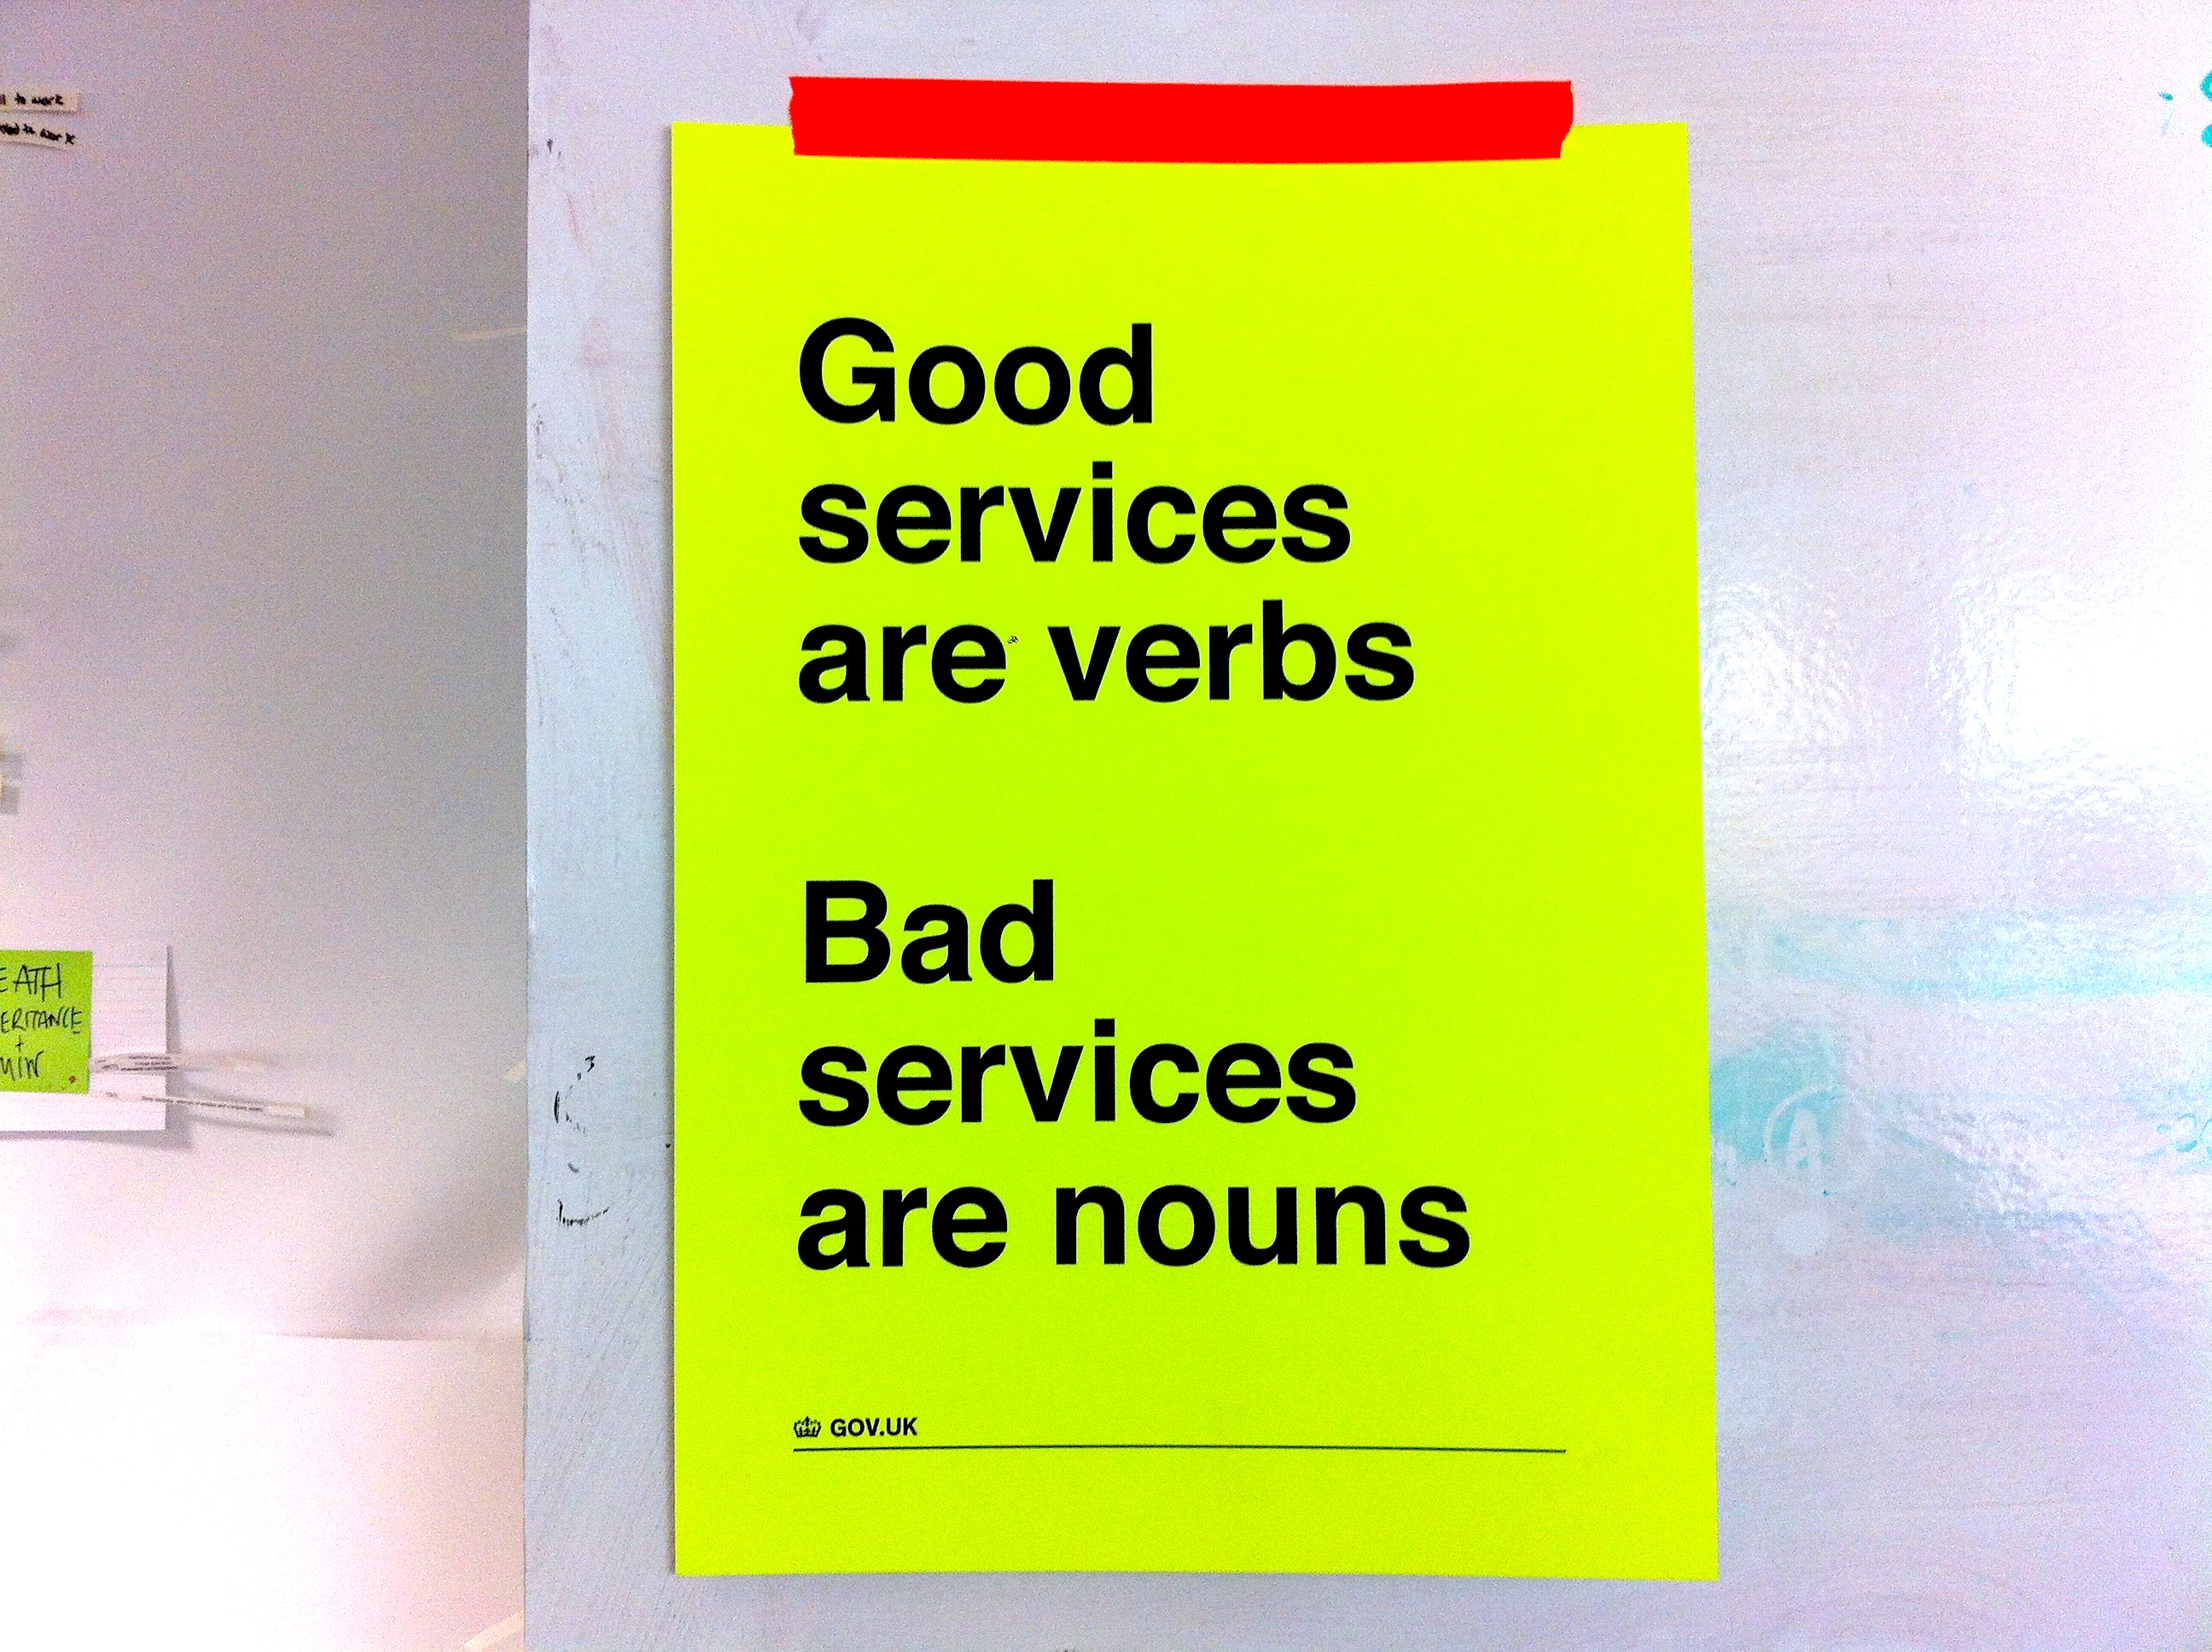 good services are verbs bad services are nouns design notes what makes a good service